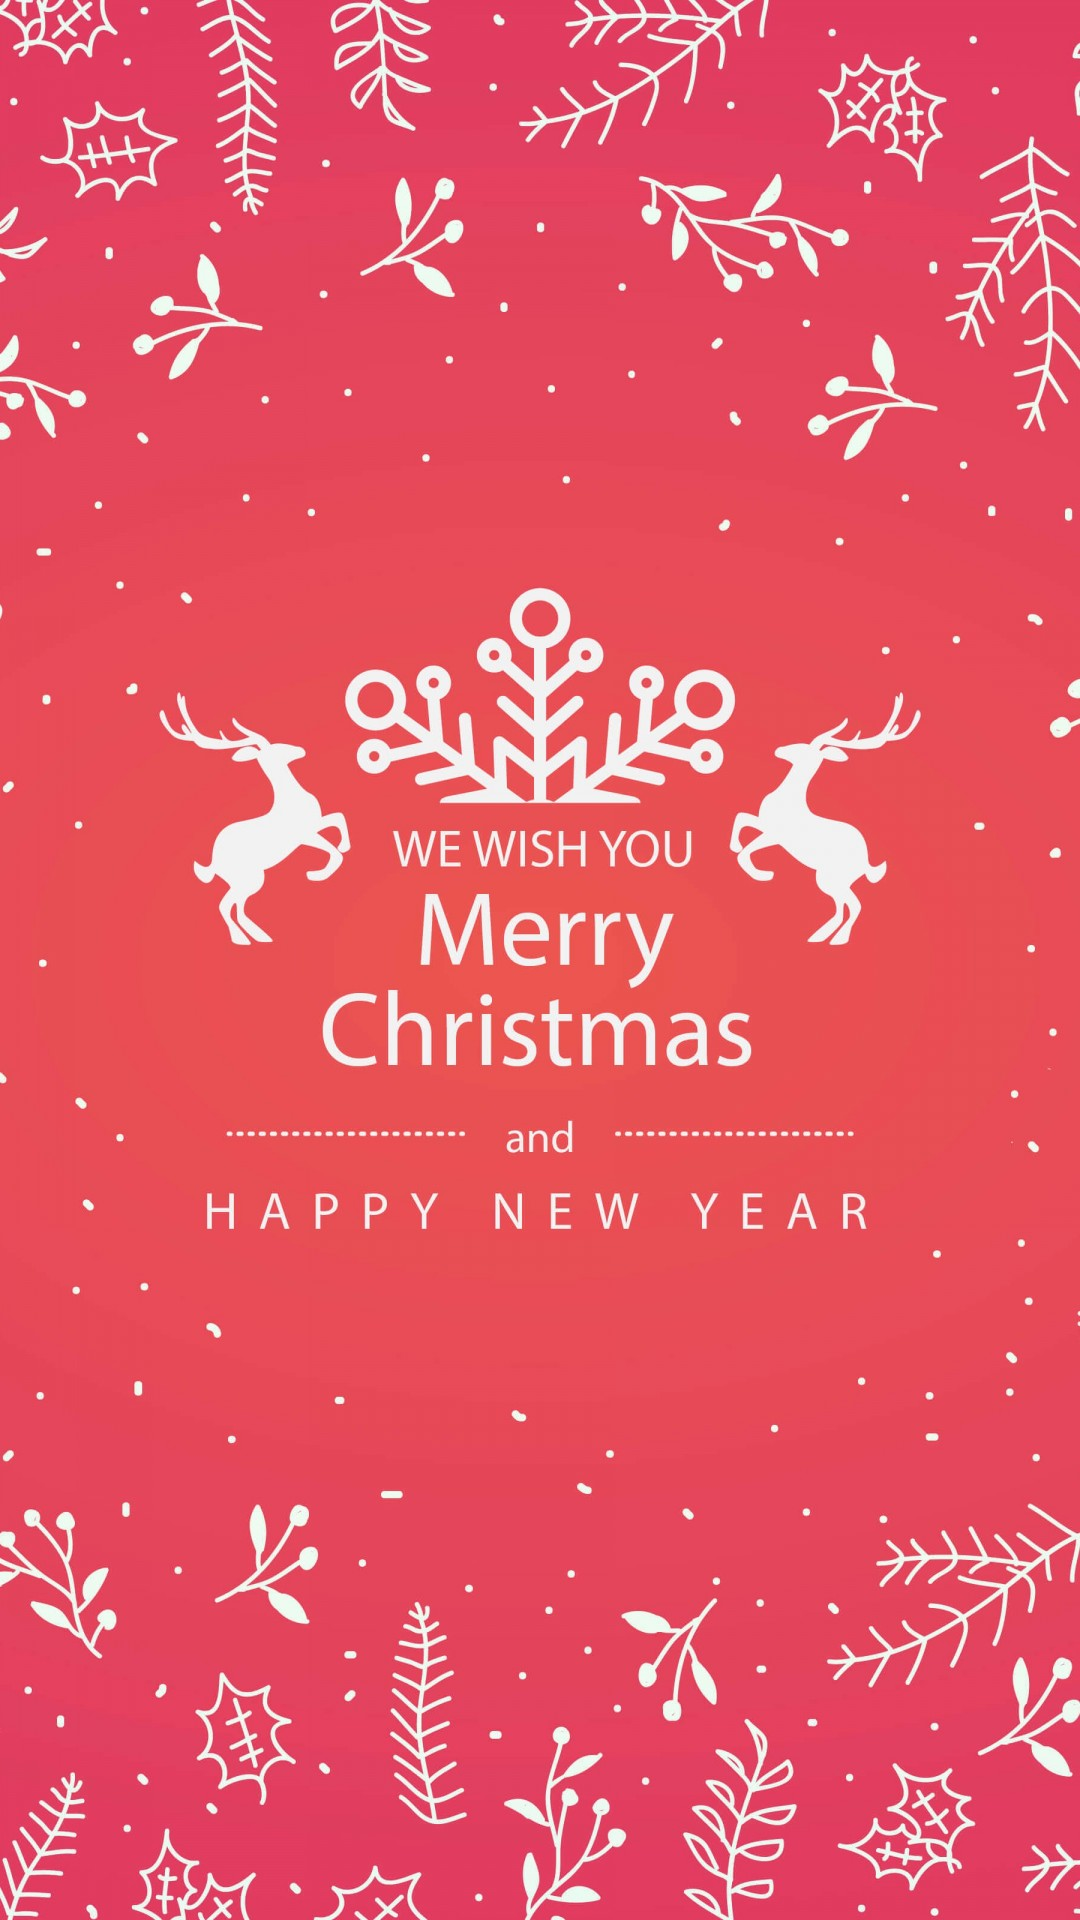 Wallpaper Hd Happy New Year Merry Christmas Floral Hd Wallpaper For Xperia Z1 Screens